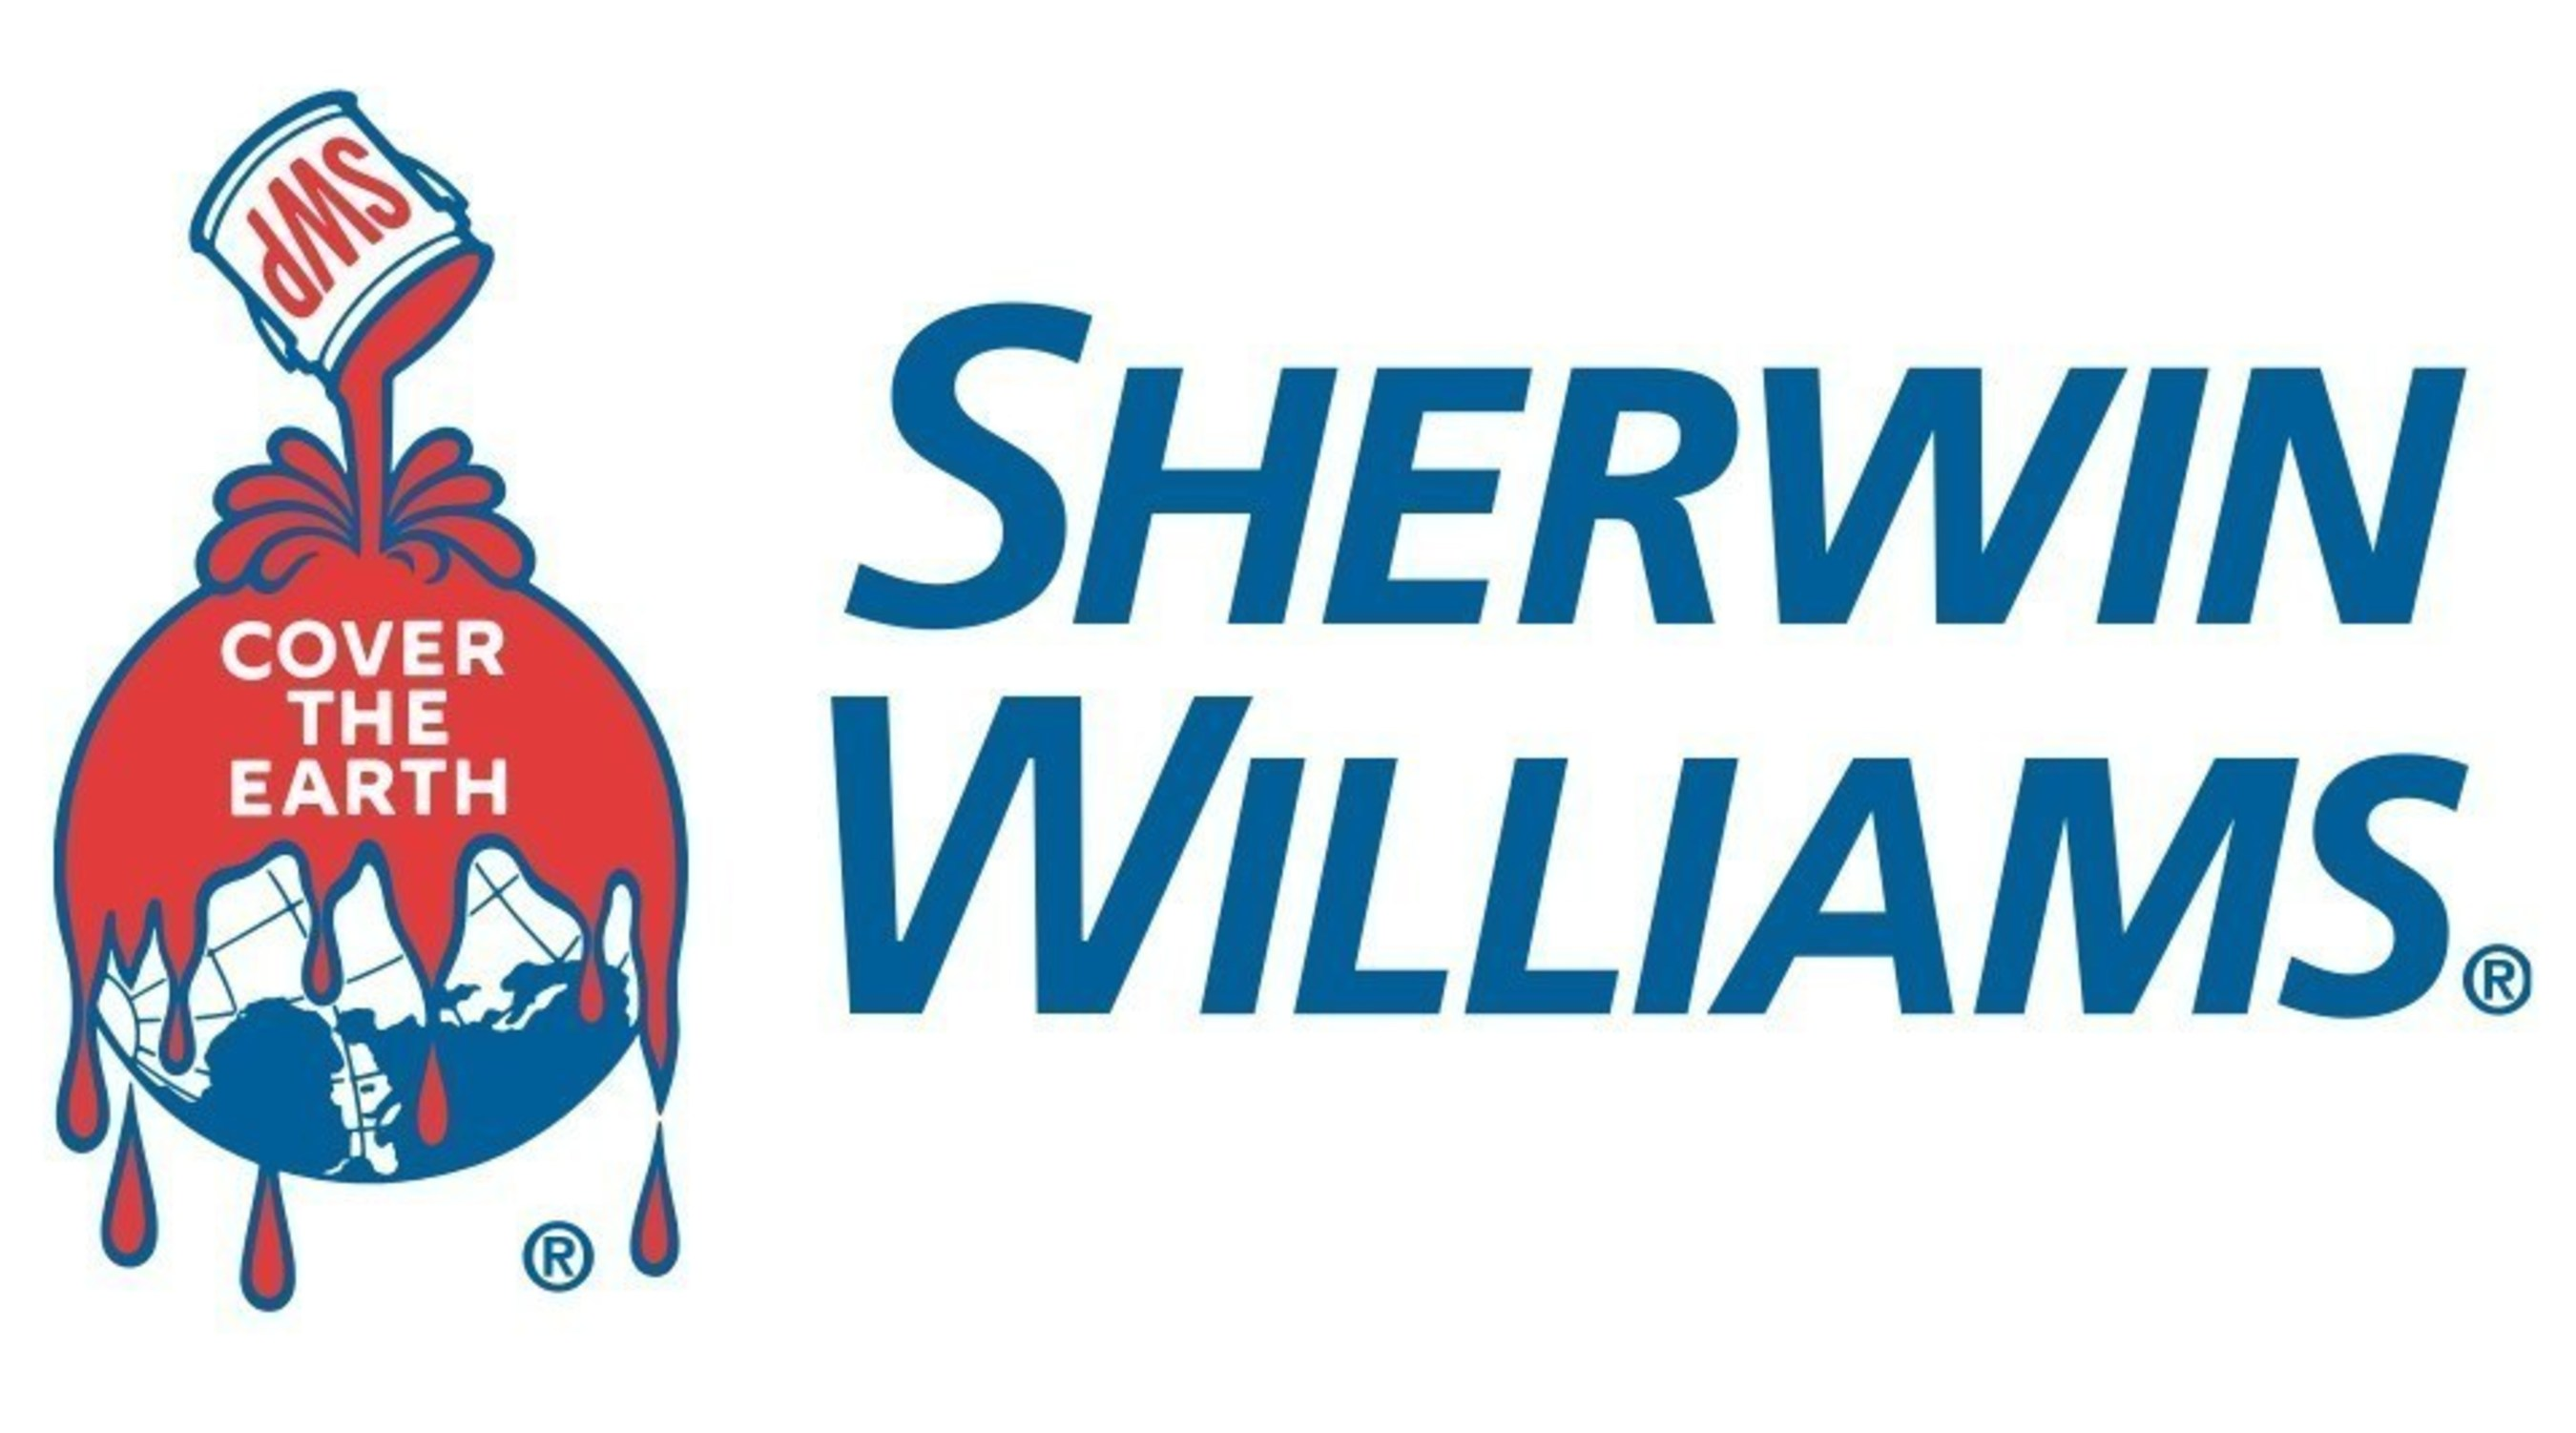 icono marca sherwin williams